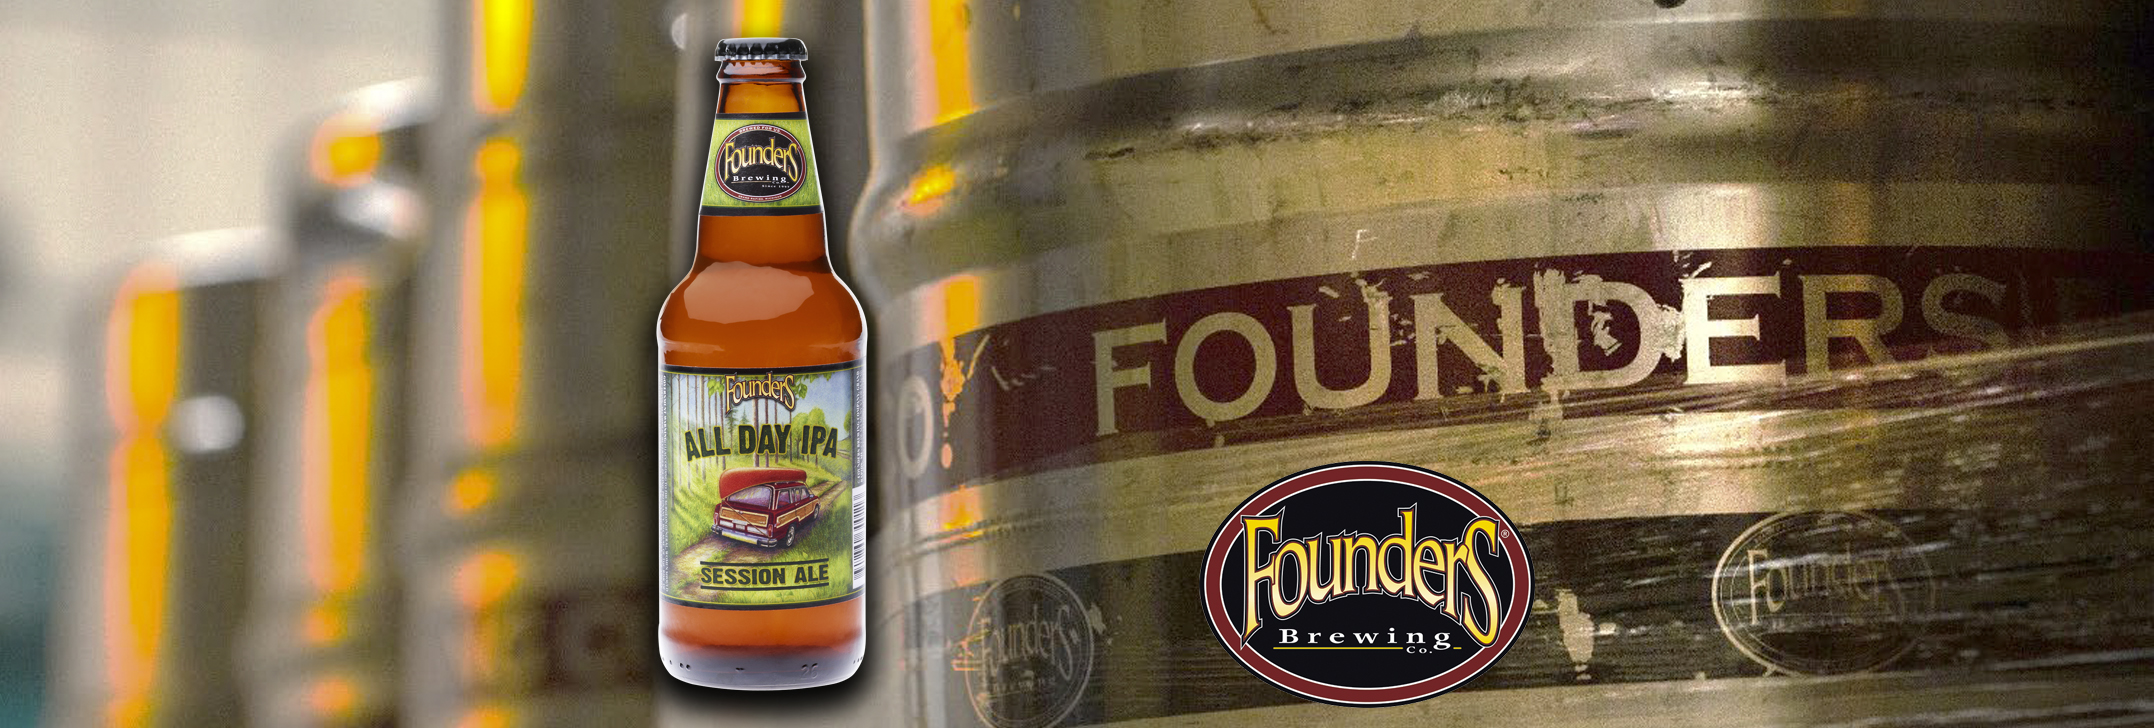 Llega All Day IPA de Founders Brewing